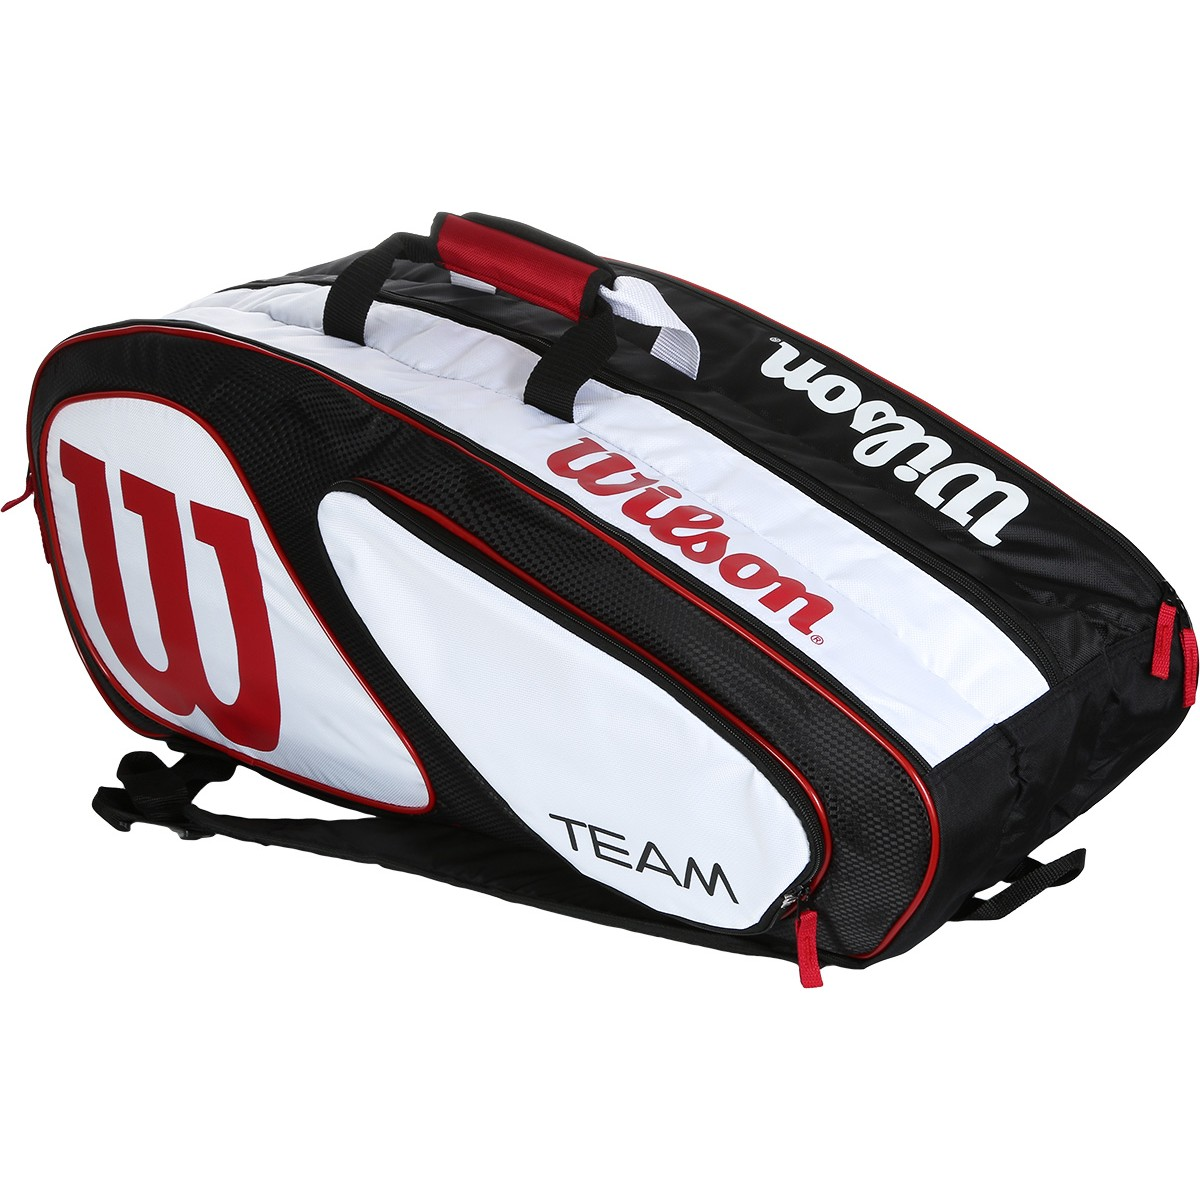 BORSA DA TENNIS WILSON TEAM II 12 RACCHETTA LIMITED EDITION